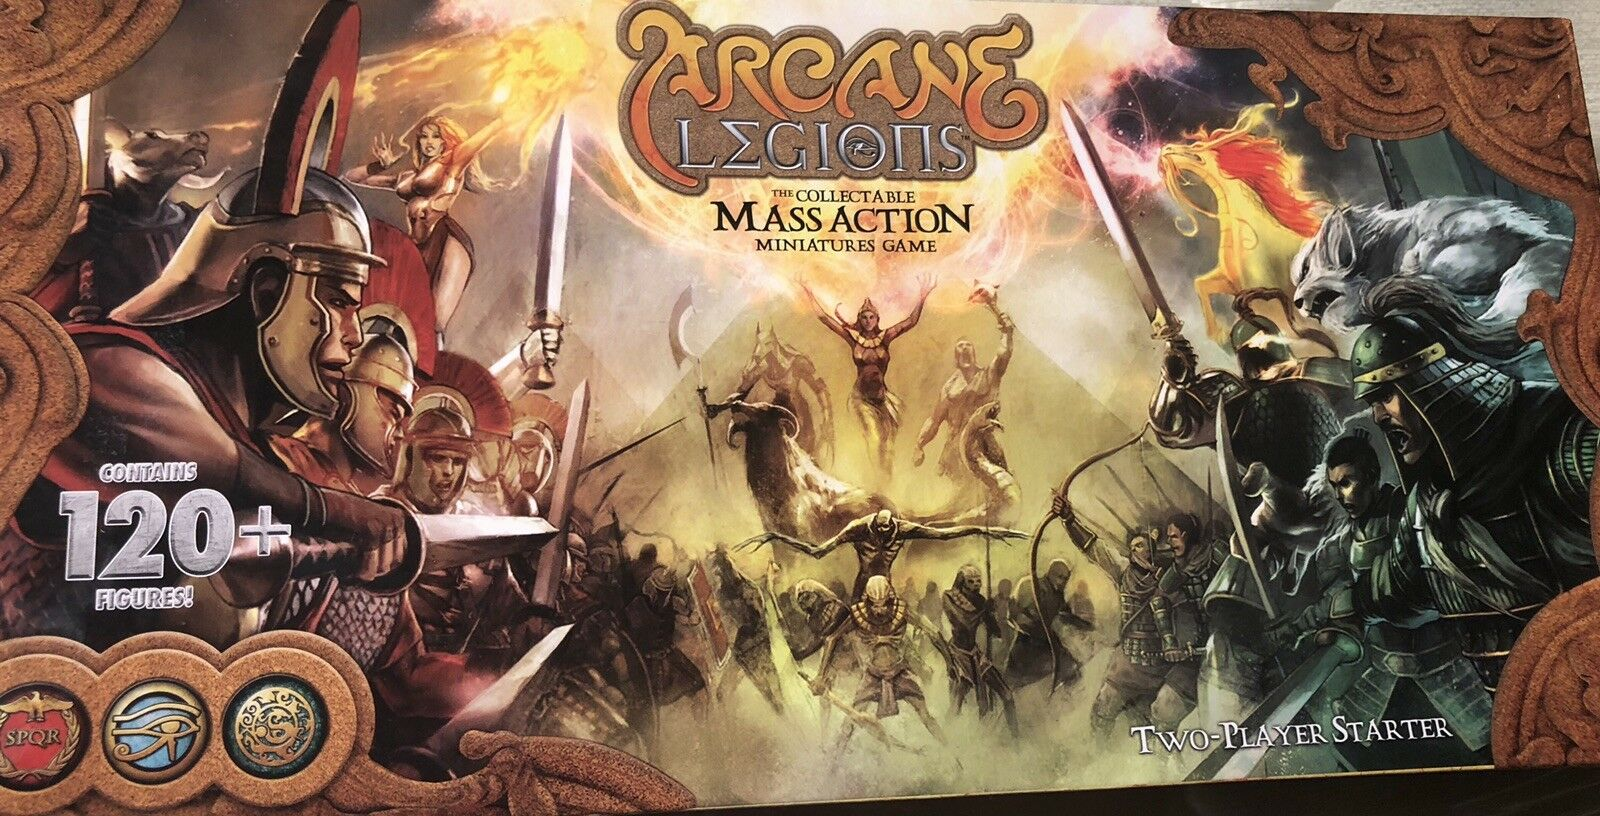 Arcade legions the collectable mass action miniatures game